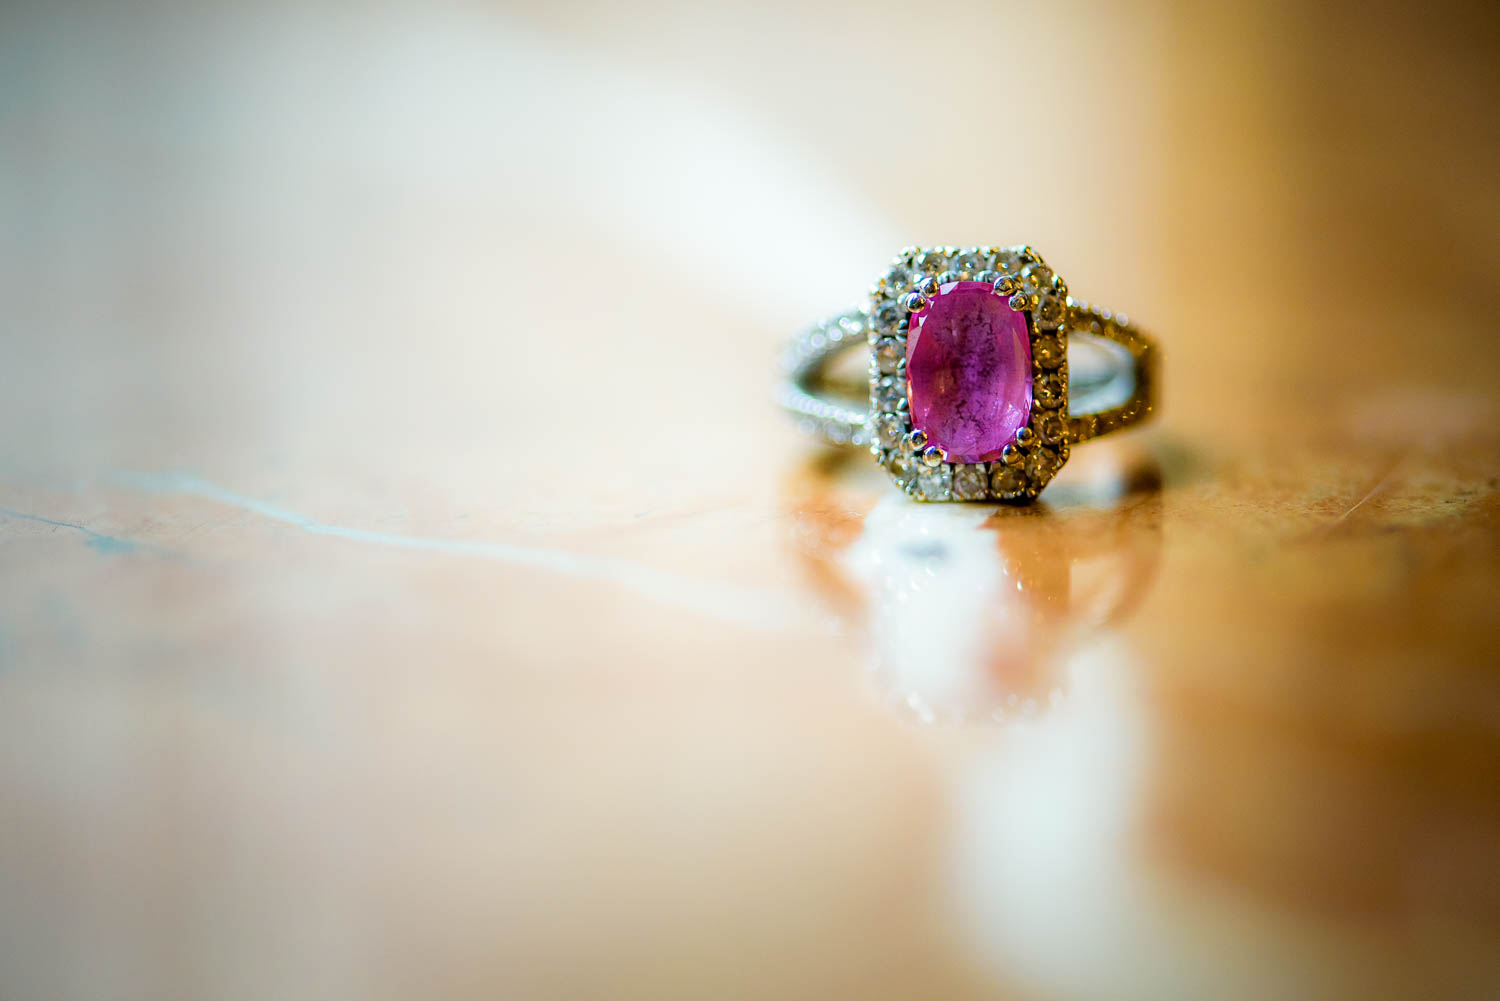 Ring detail photo at a University Club of Chicago wedding.